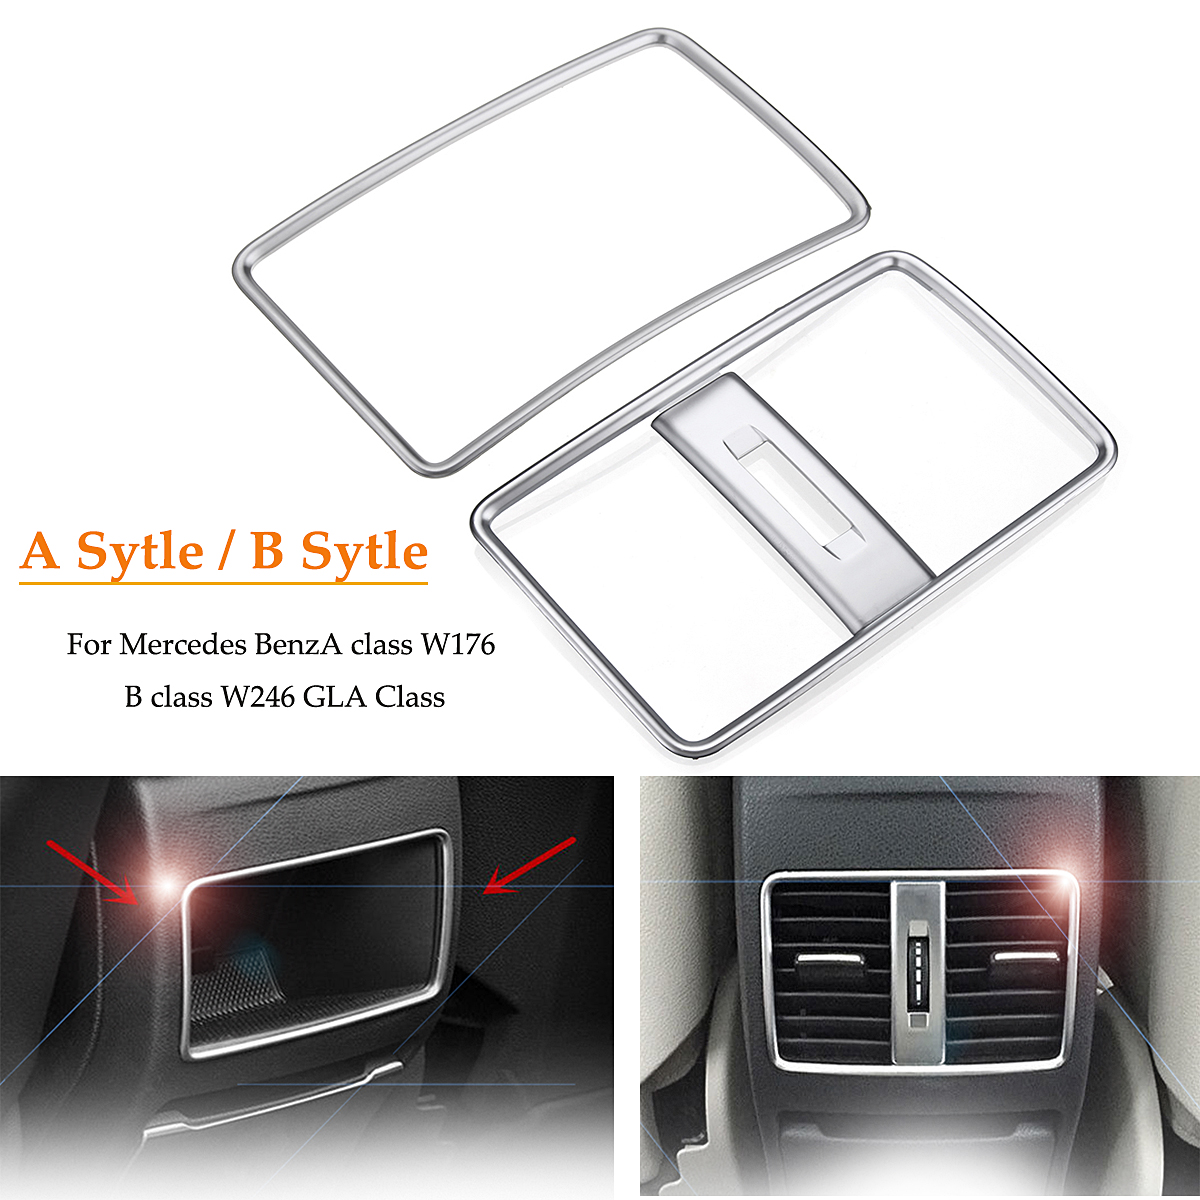 Car Rear Air Condition Outlet Vent?Trim Chrome Decoration for <font><b>Mercedes</b></font> for Benz A class <font><b>W176</b></font> B class W246 GLA Class Car Styling image